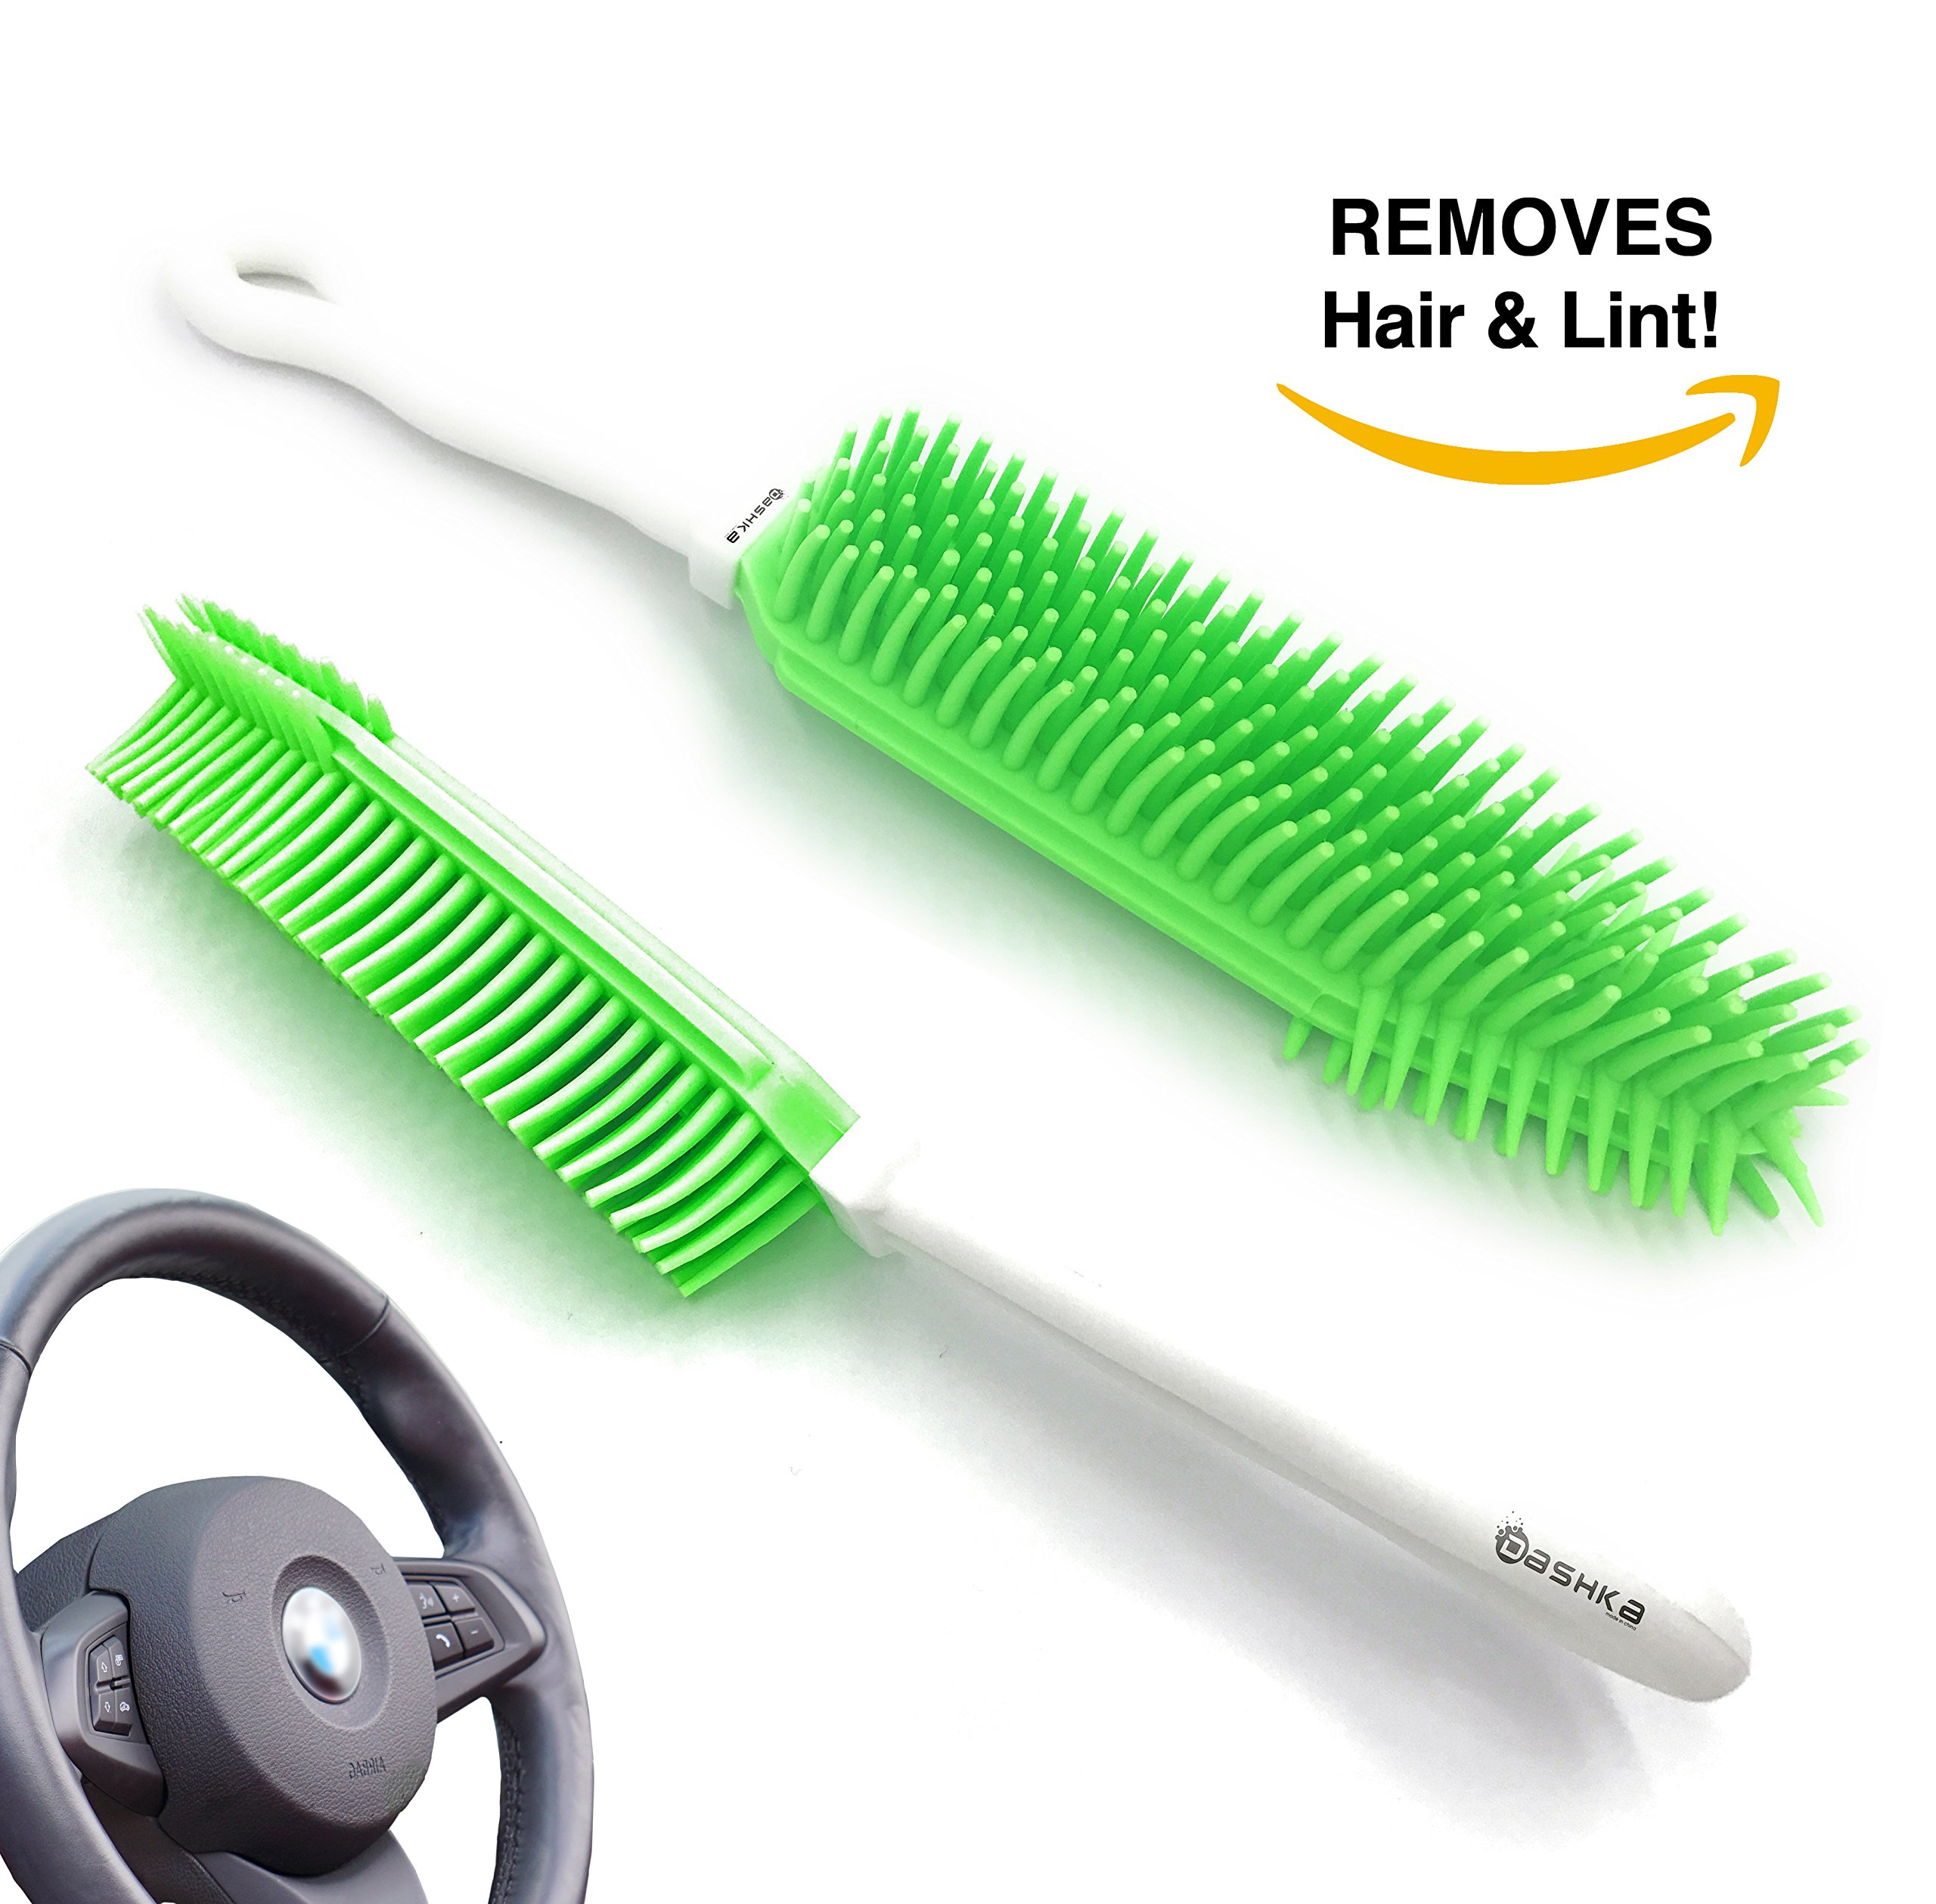 Best Car & Auto Detailing Brush for Pet Hair Removal and Car Upholstery Cleaner - Best Pet Hair Remover for Dog And Cat Hair - Great On Furniture (Bedding, Carpets, Blankets) – Use As A Lint Remover f